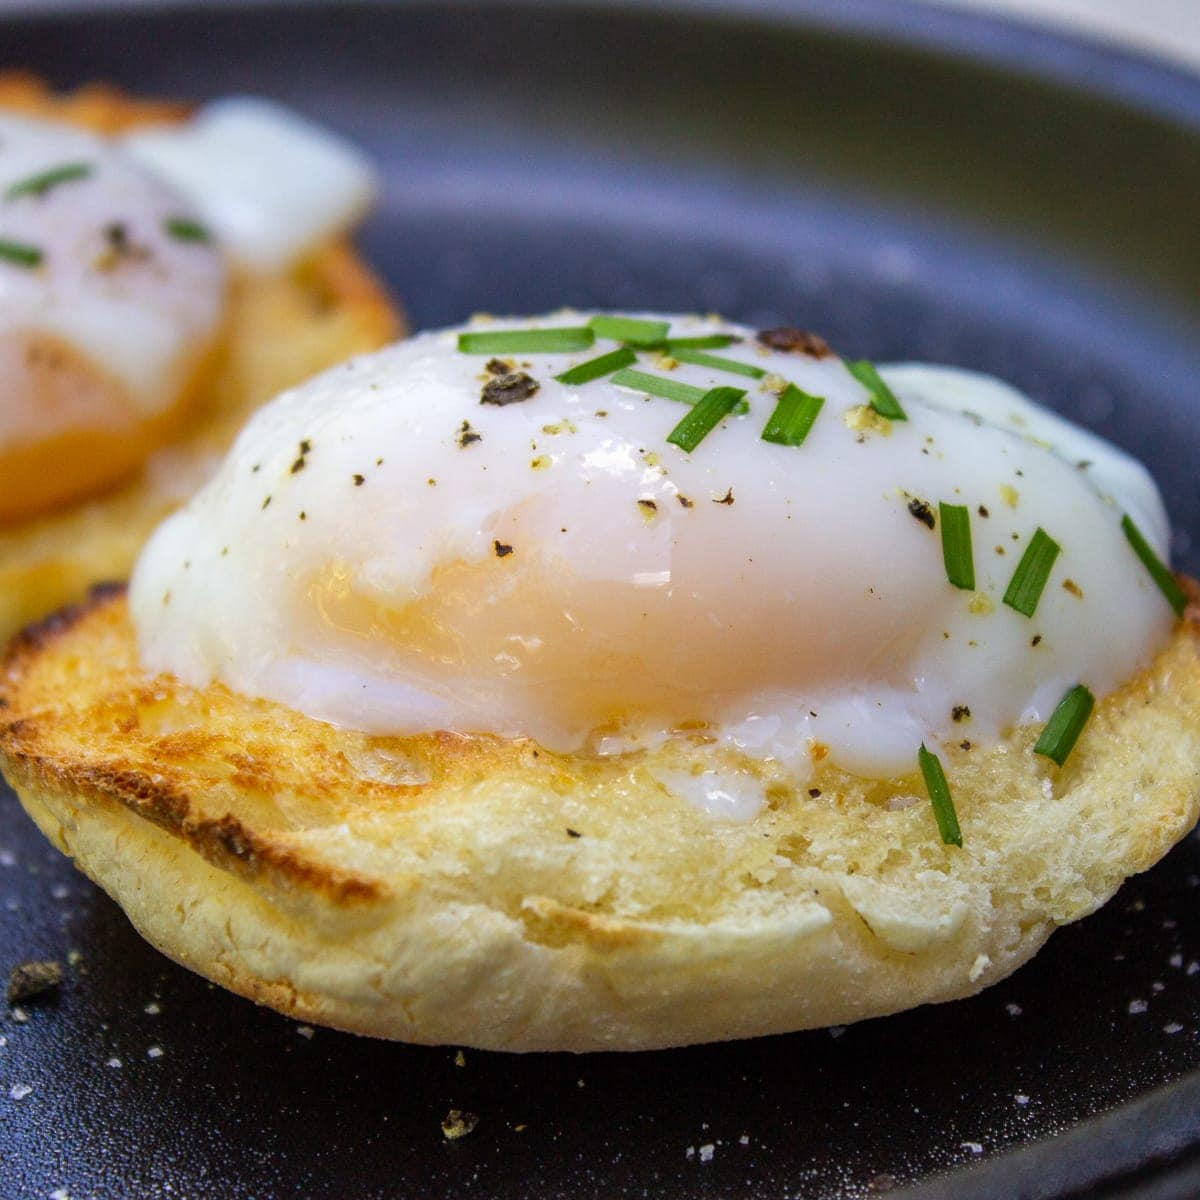 poached eggs on english muffin on plate